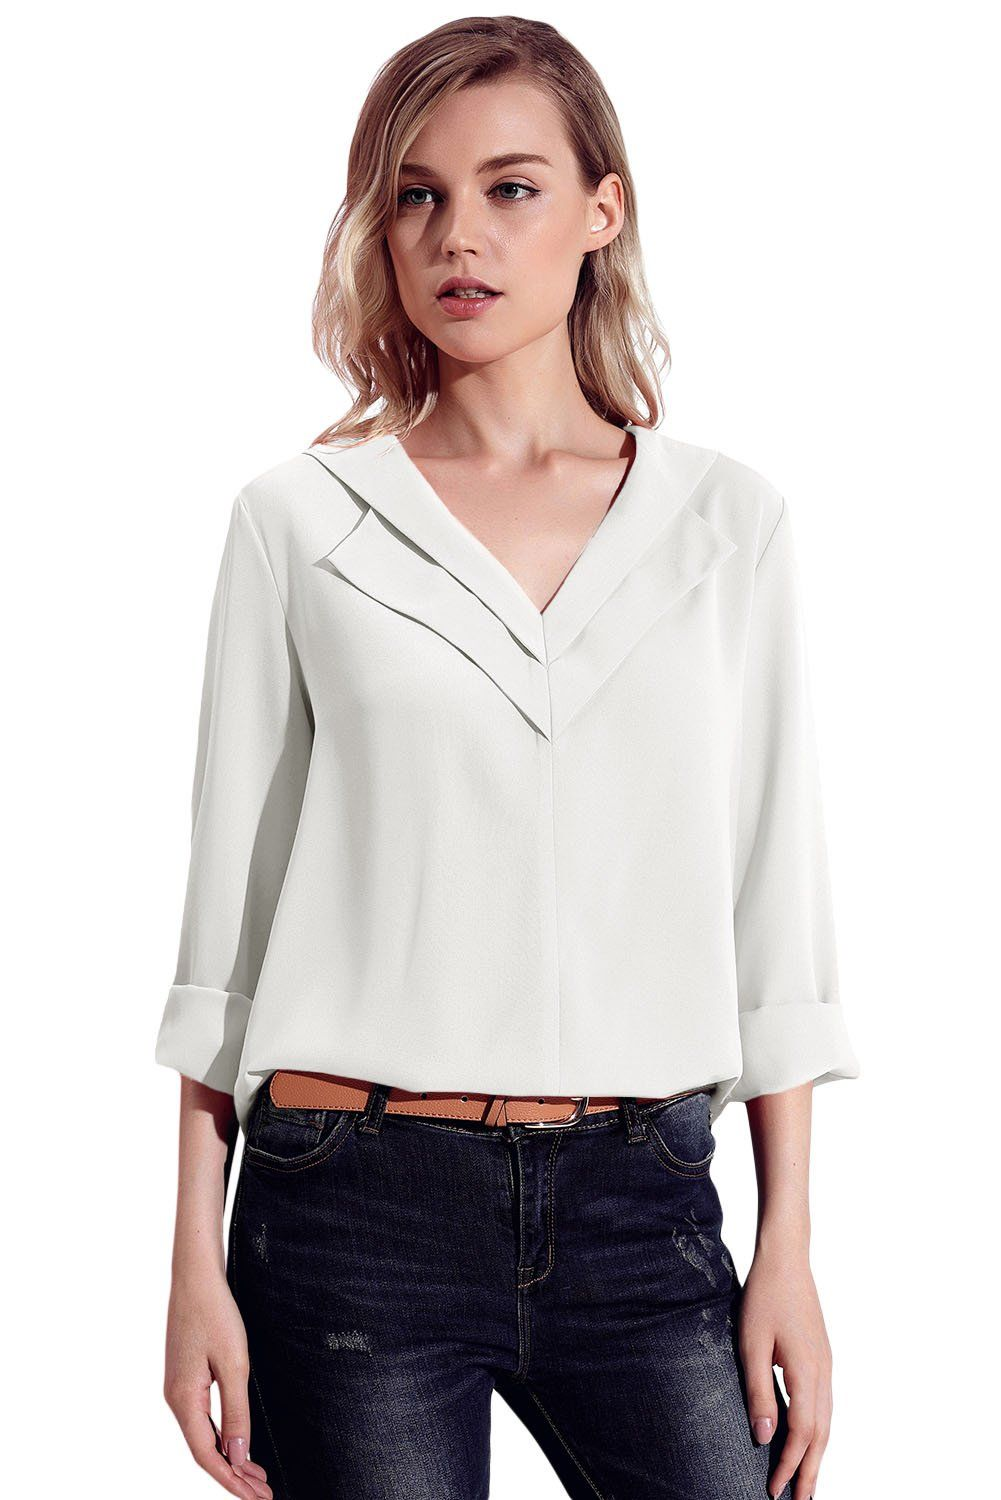 47e4ef72272 •Preppy style collared blouse for women •Made from soft lightsome chiffon  fabric •V neck